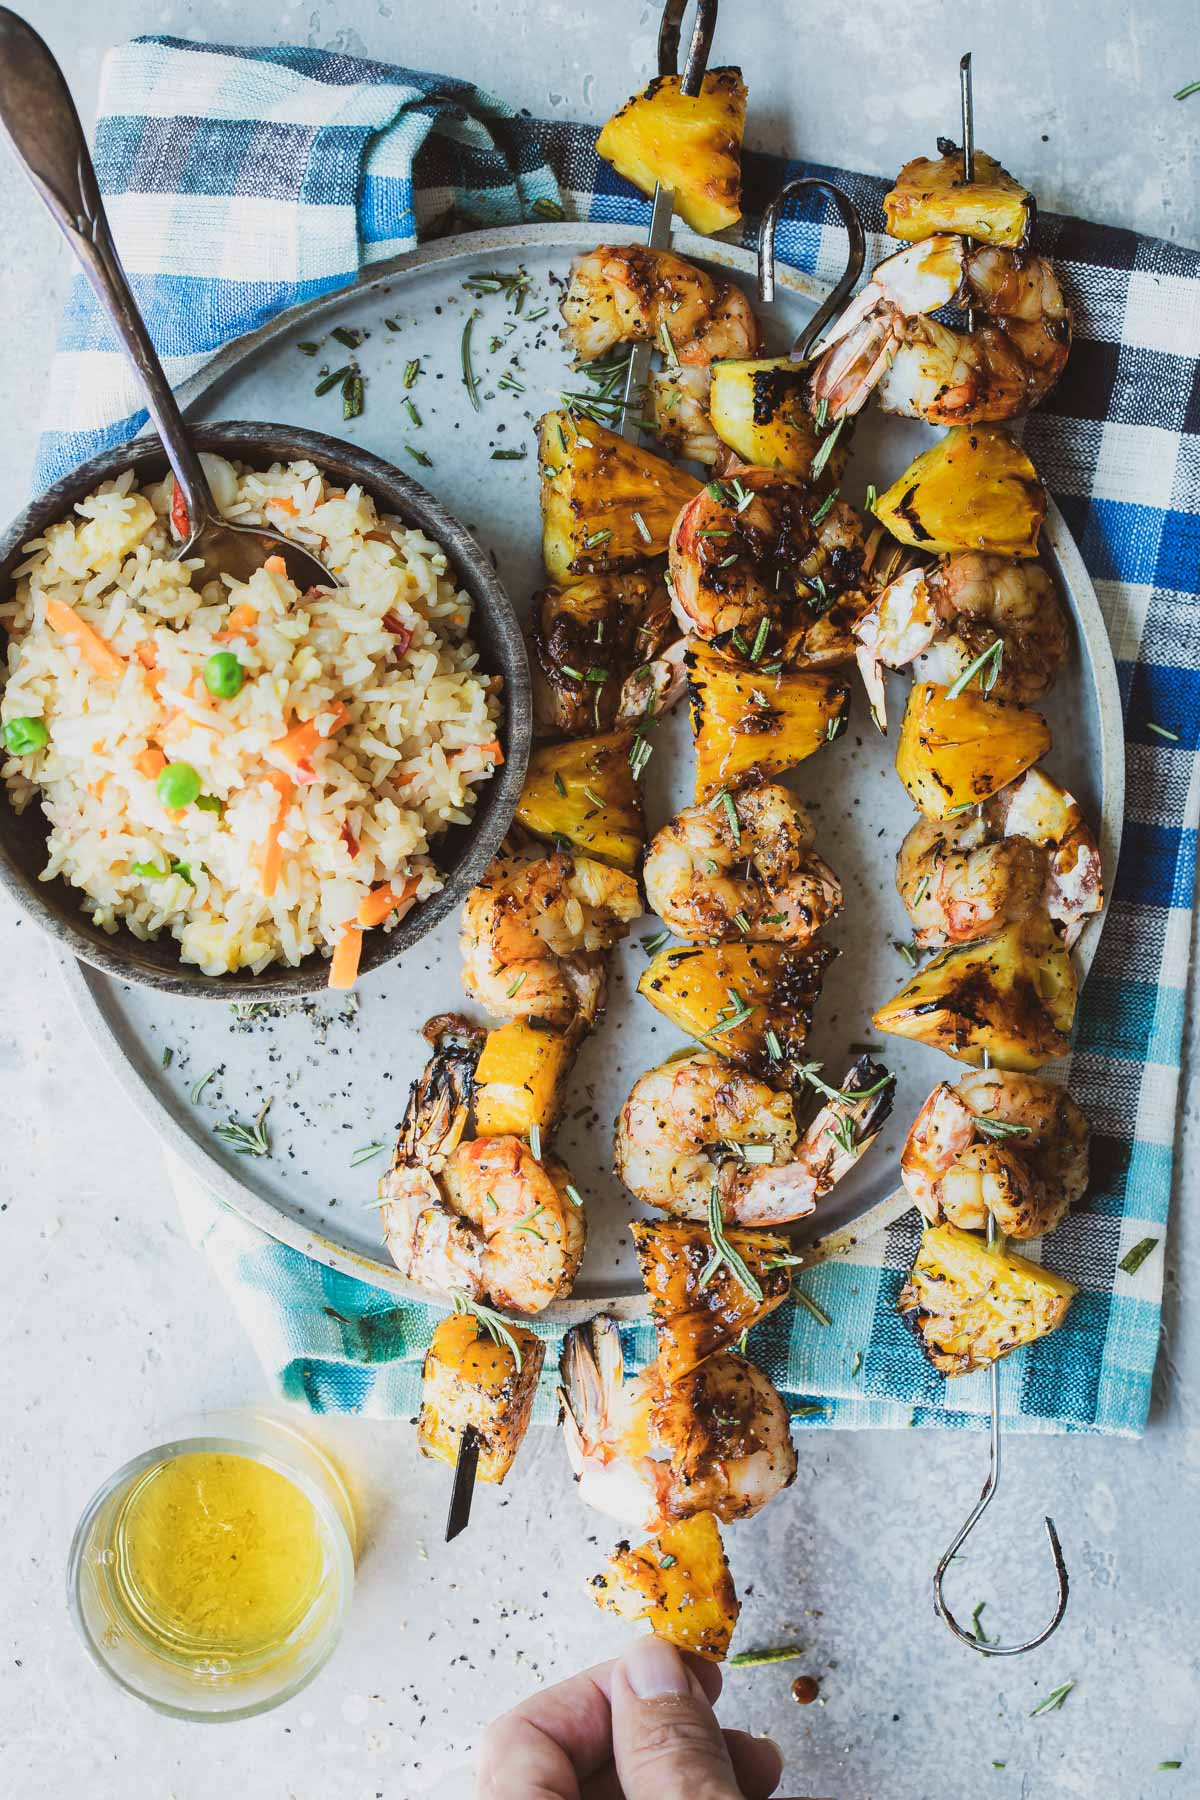 grilled pineapple kebabs on a plate with a side of rice.